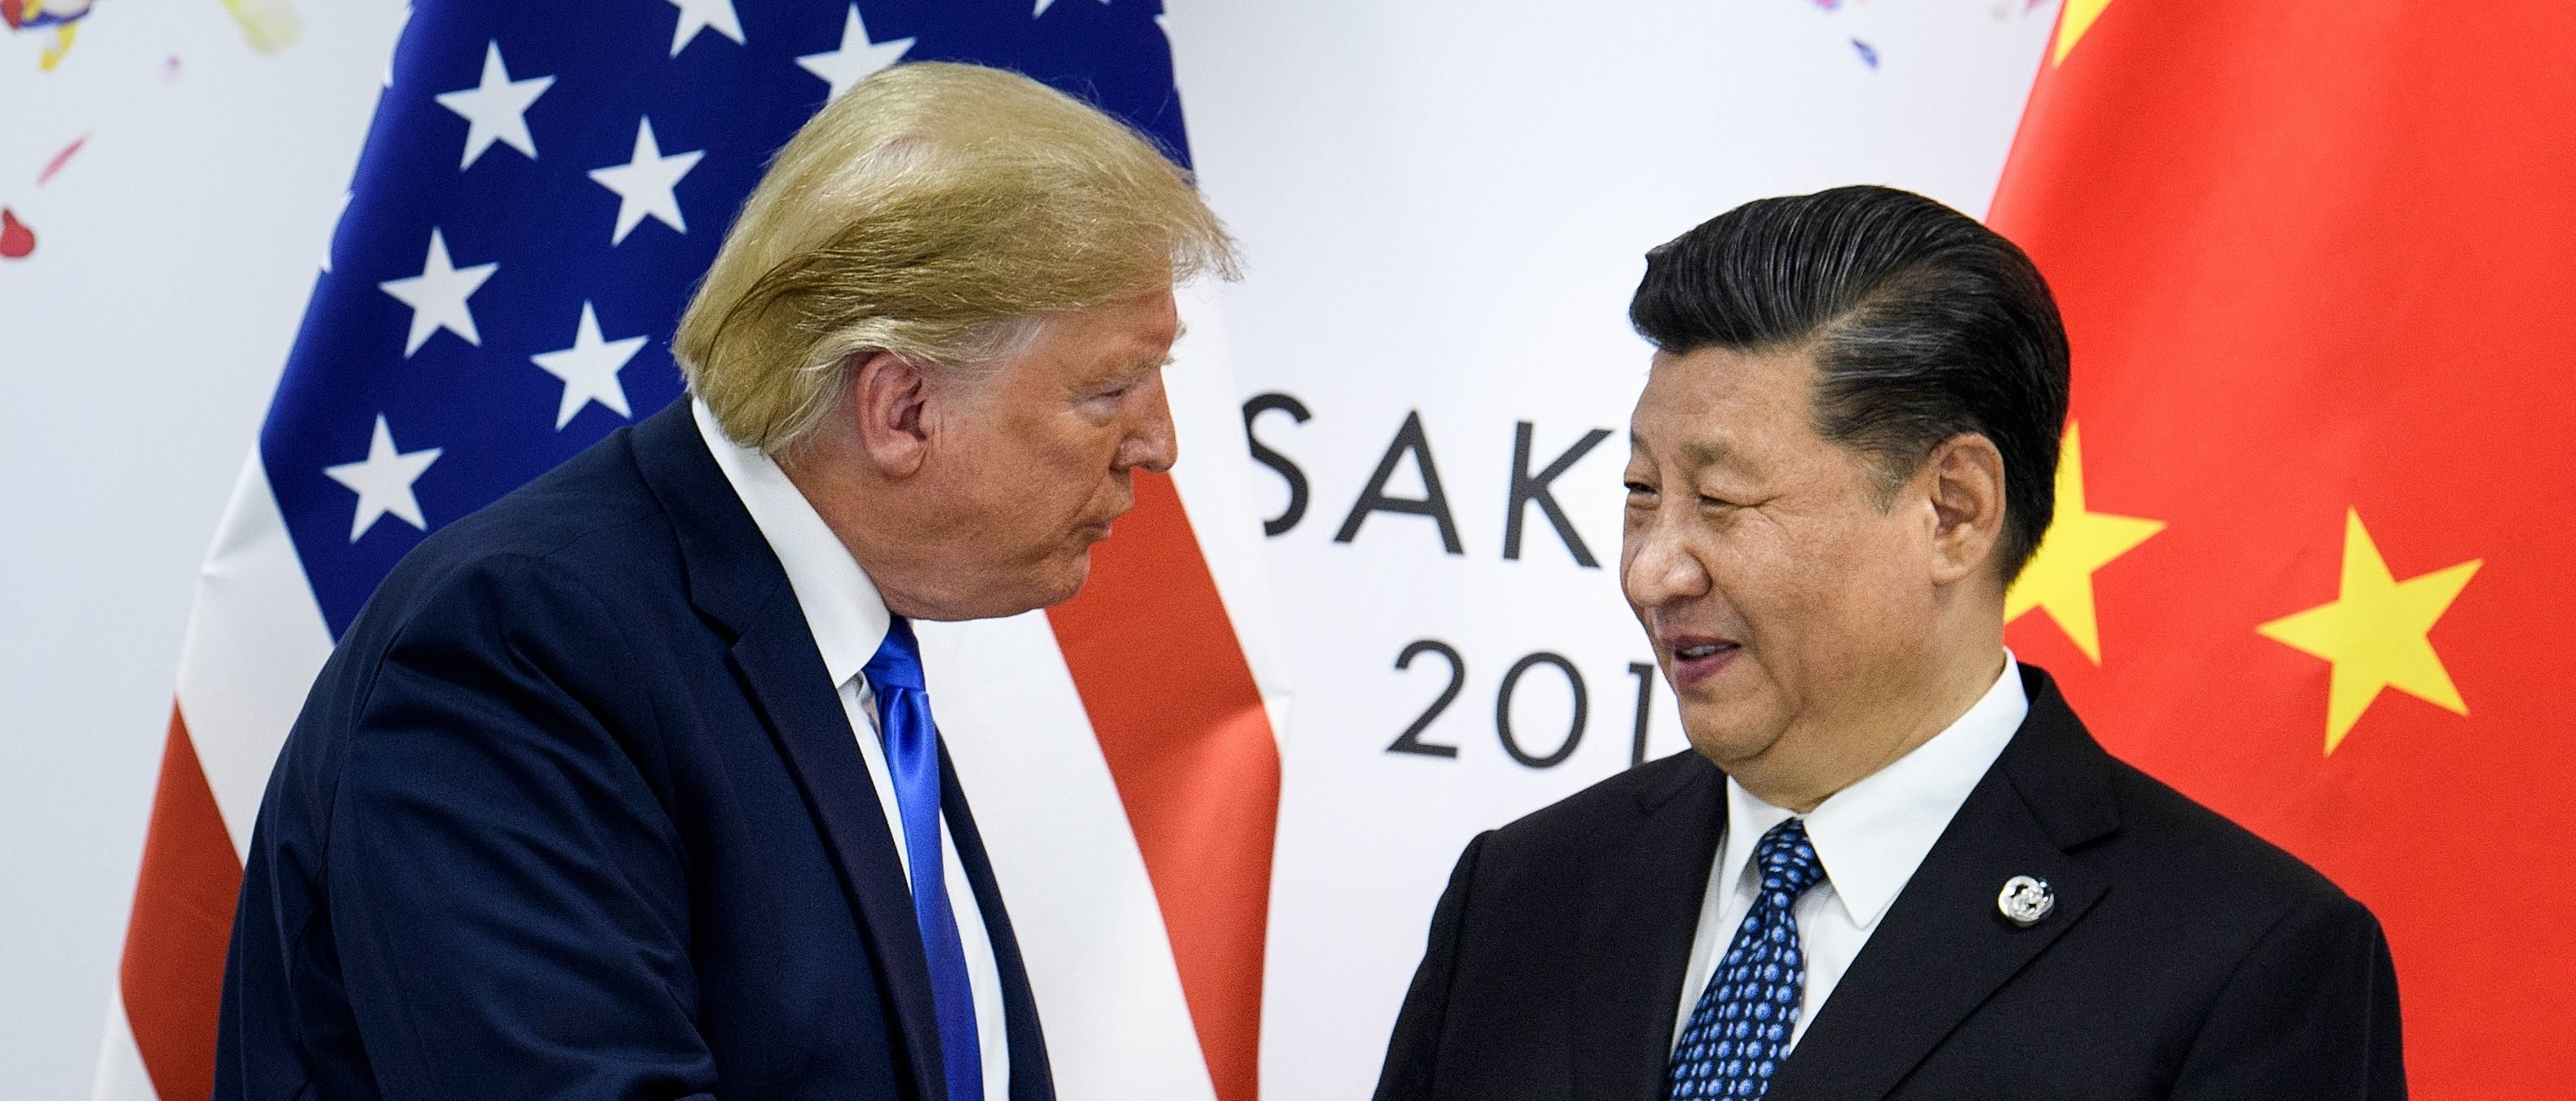 China's President Xi Jinping (R) shakes hands with US President Donald Trump before a bilateral meeting on the sidelines of the G20 Summit in Osaka on June 29, 2019. (BRENDAN SMIALOWSKI/AFP/Getty Images)